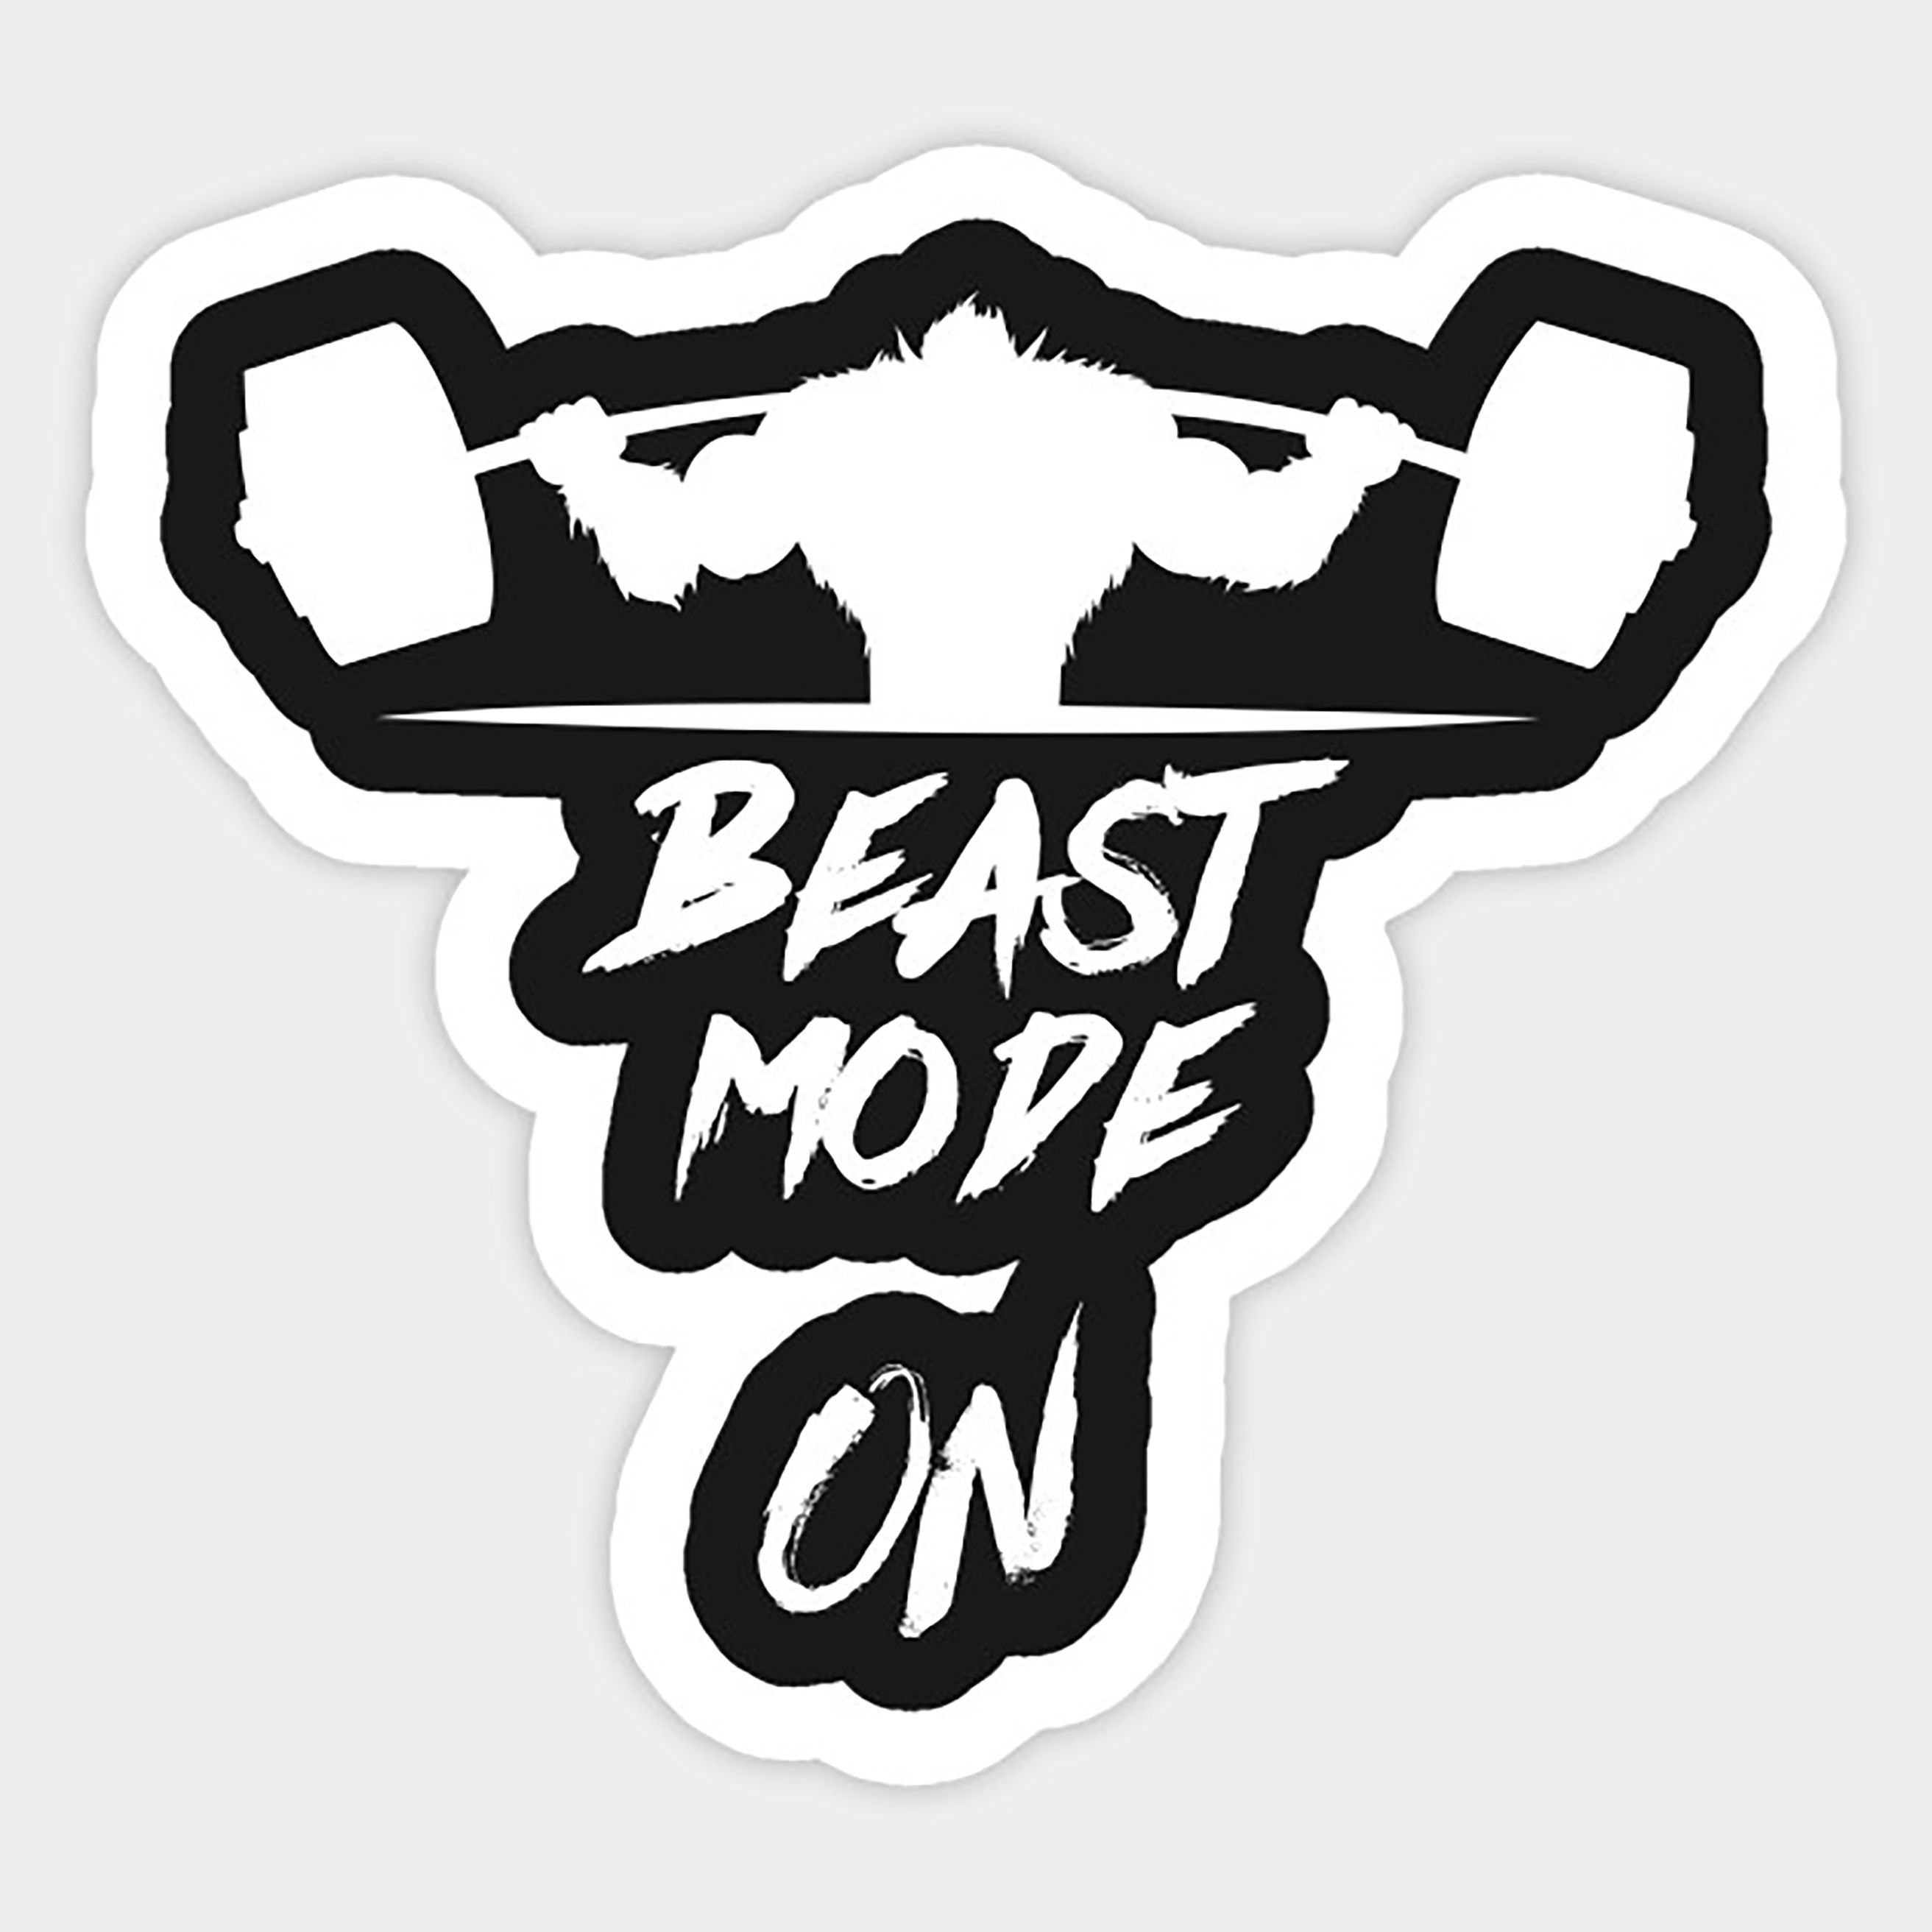 Beast Mode On Inspirational Decals Aesthetic Stickers Stickers [ 2625 x 2625 Pixel ]